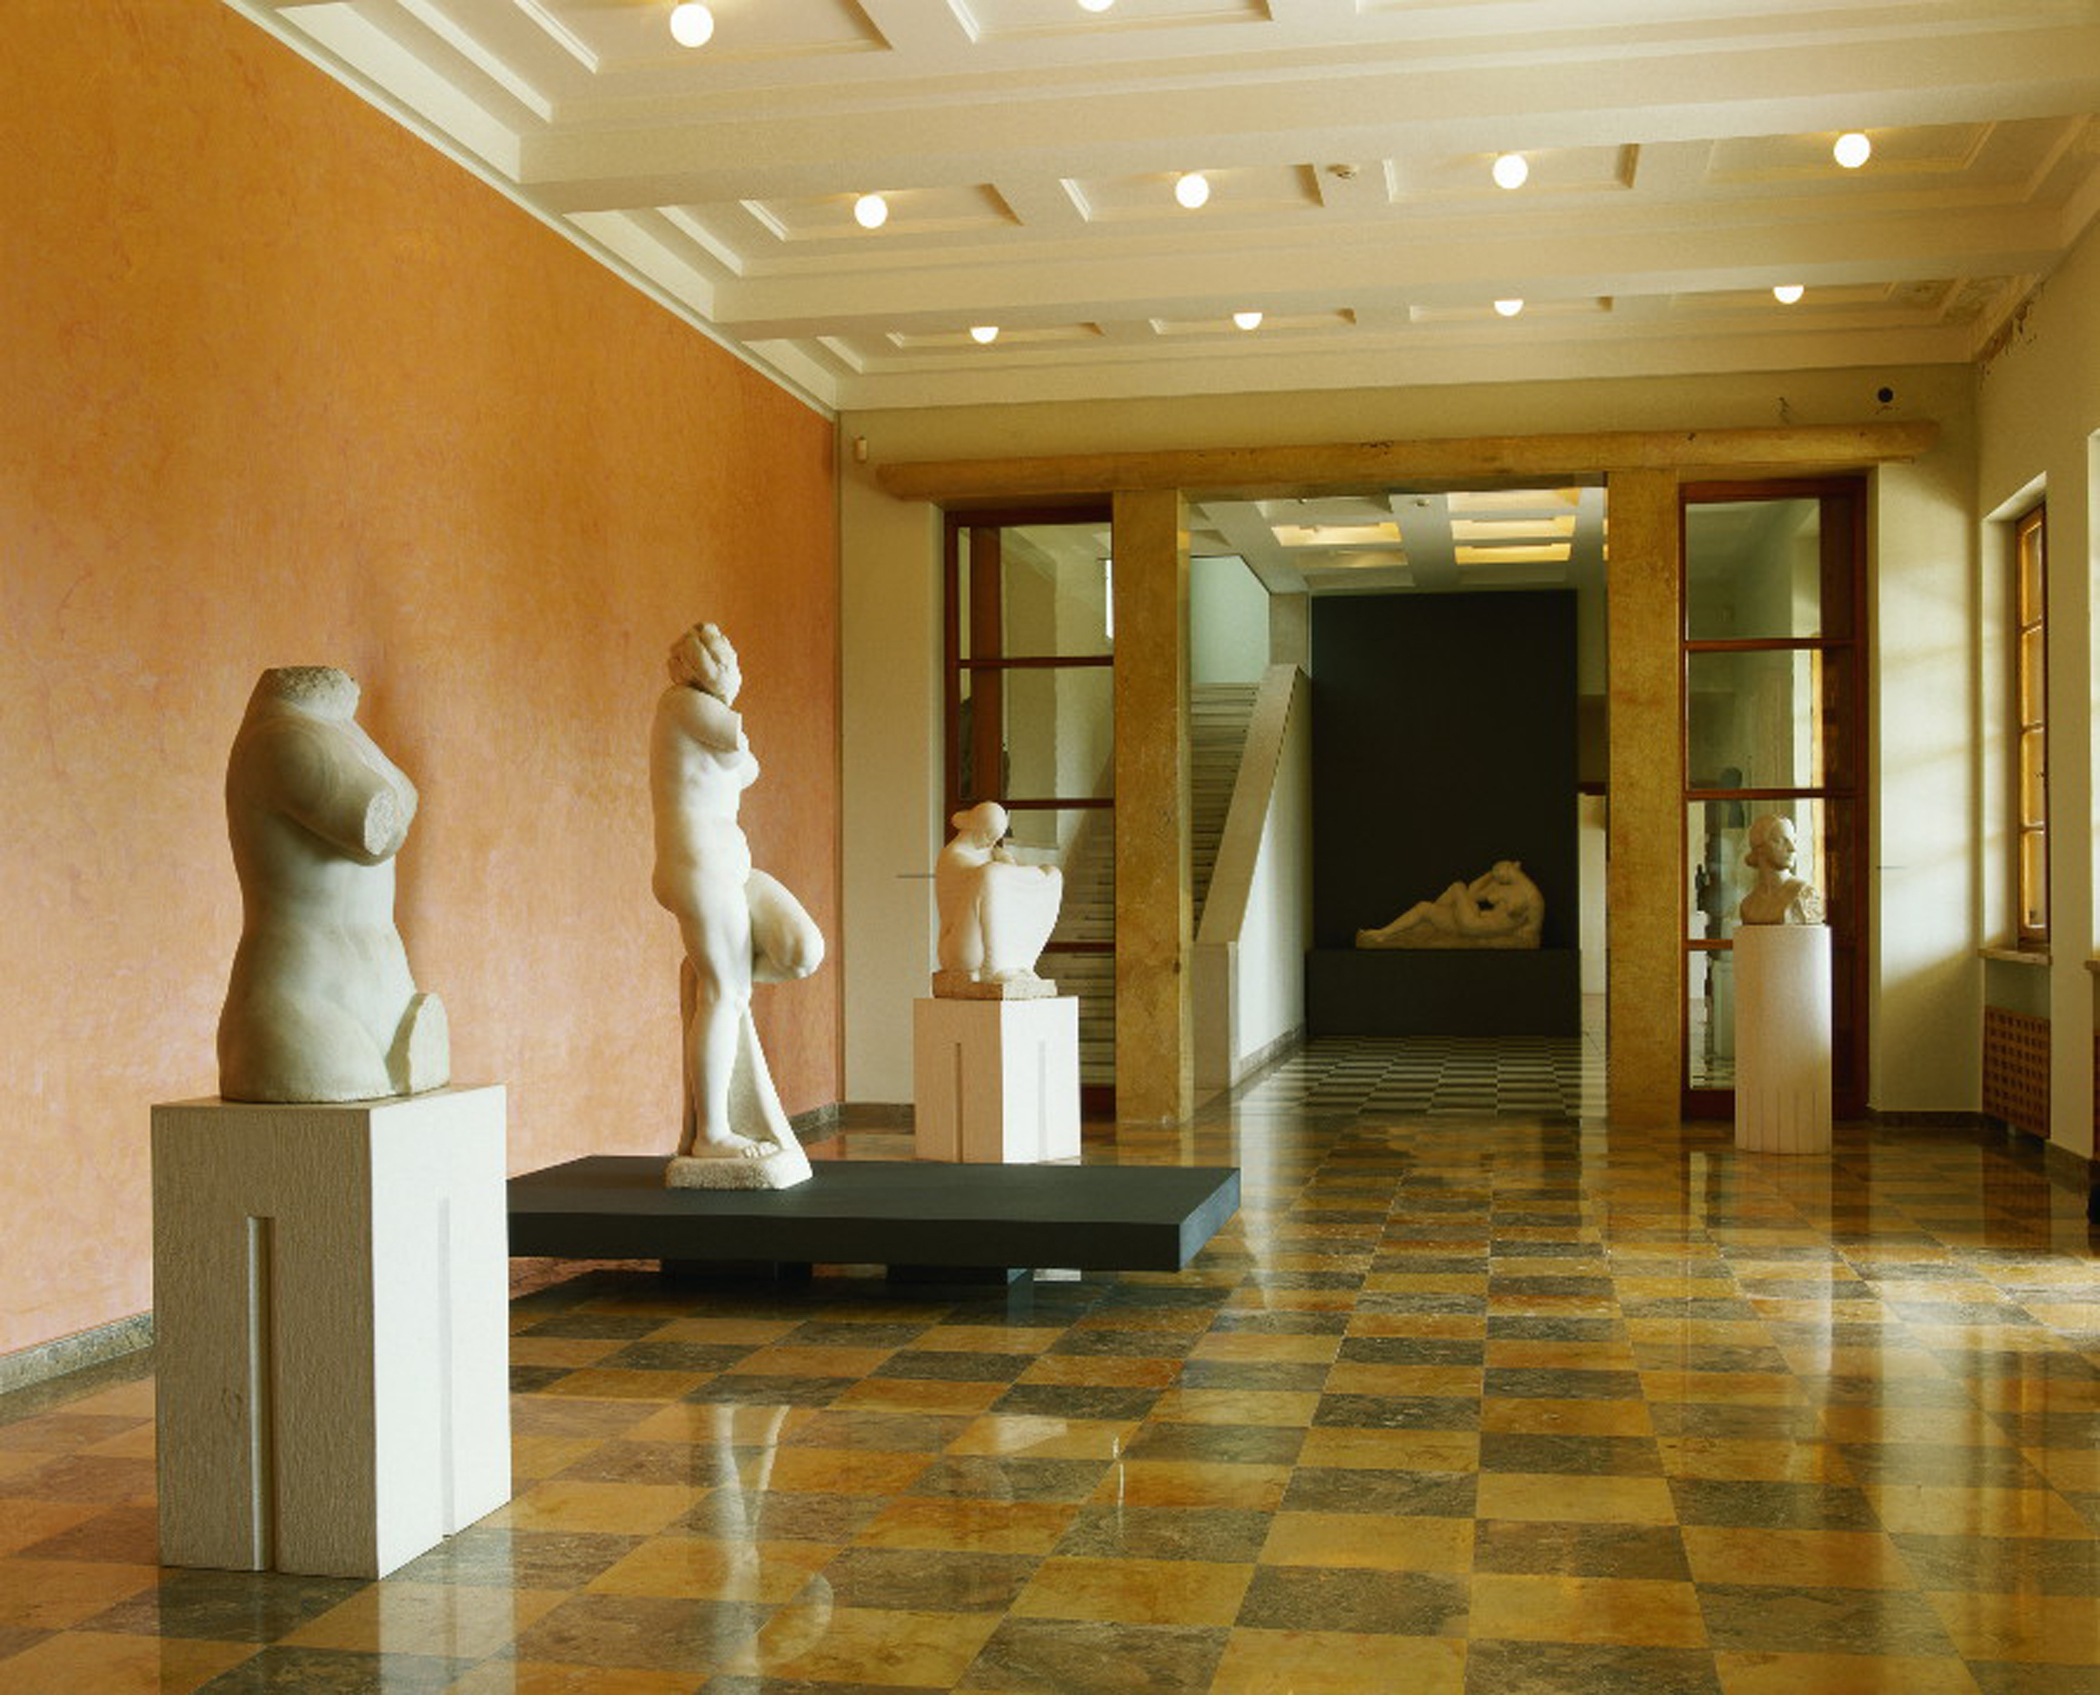 The best Split museums and galleries